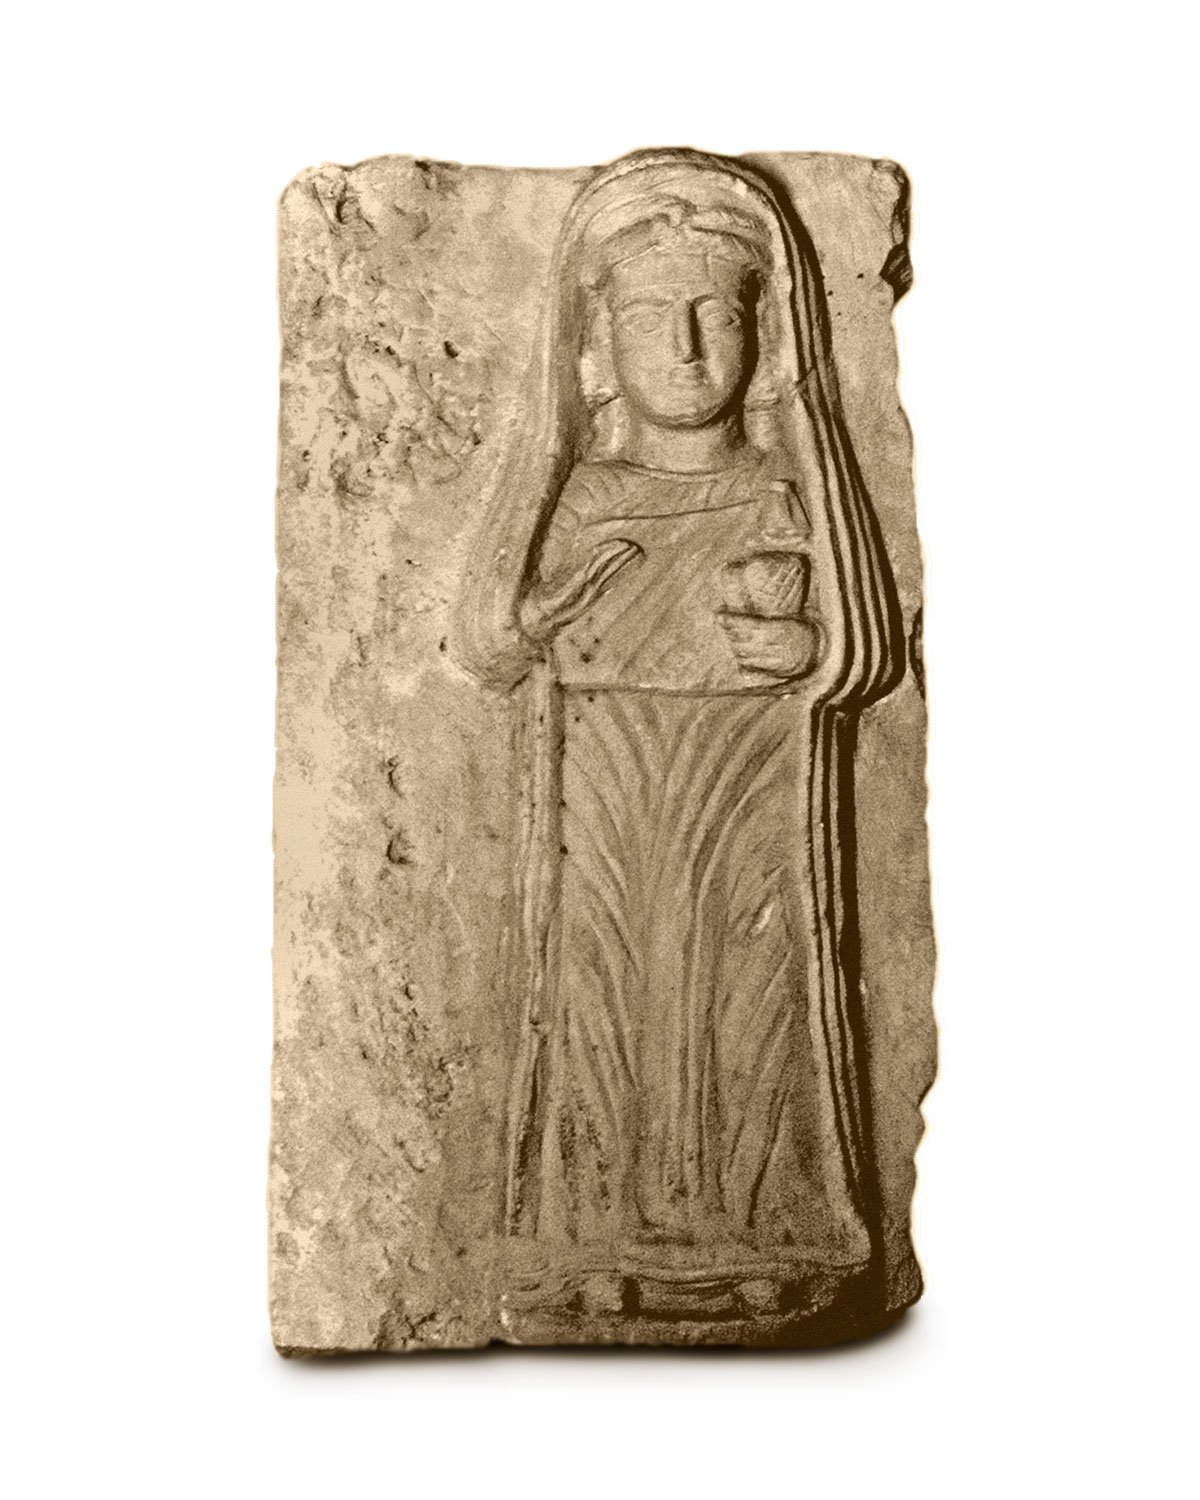 Stele with a standing woman holding spindle and distaff.